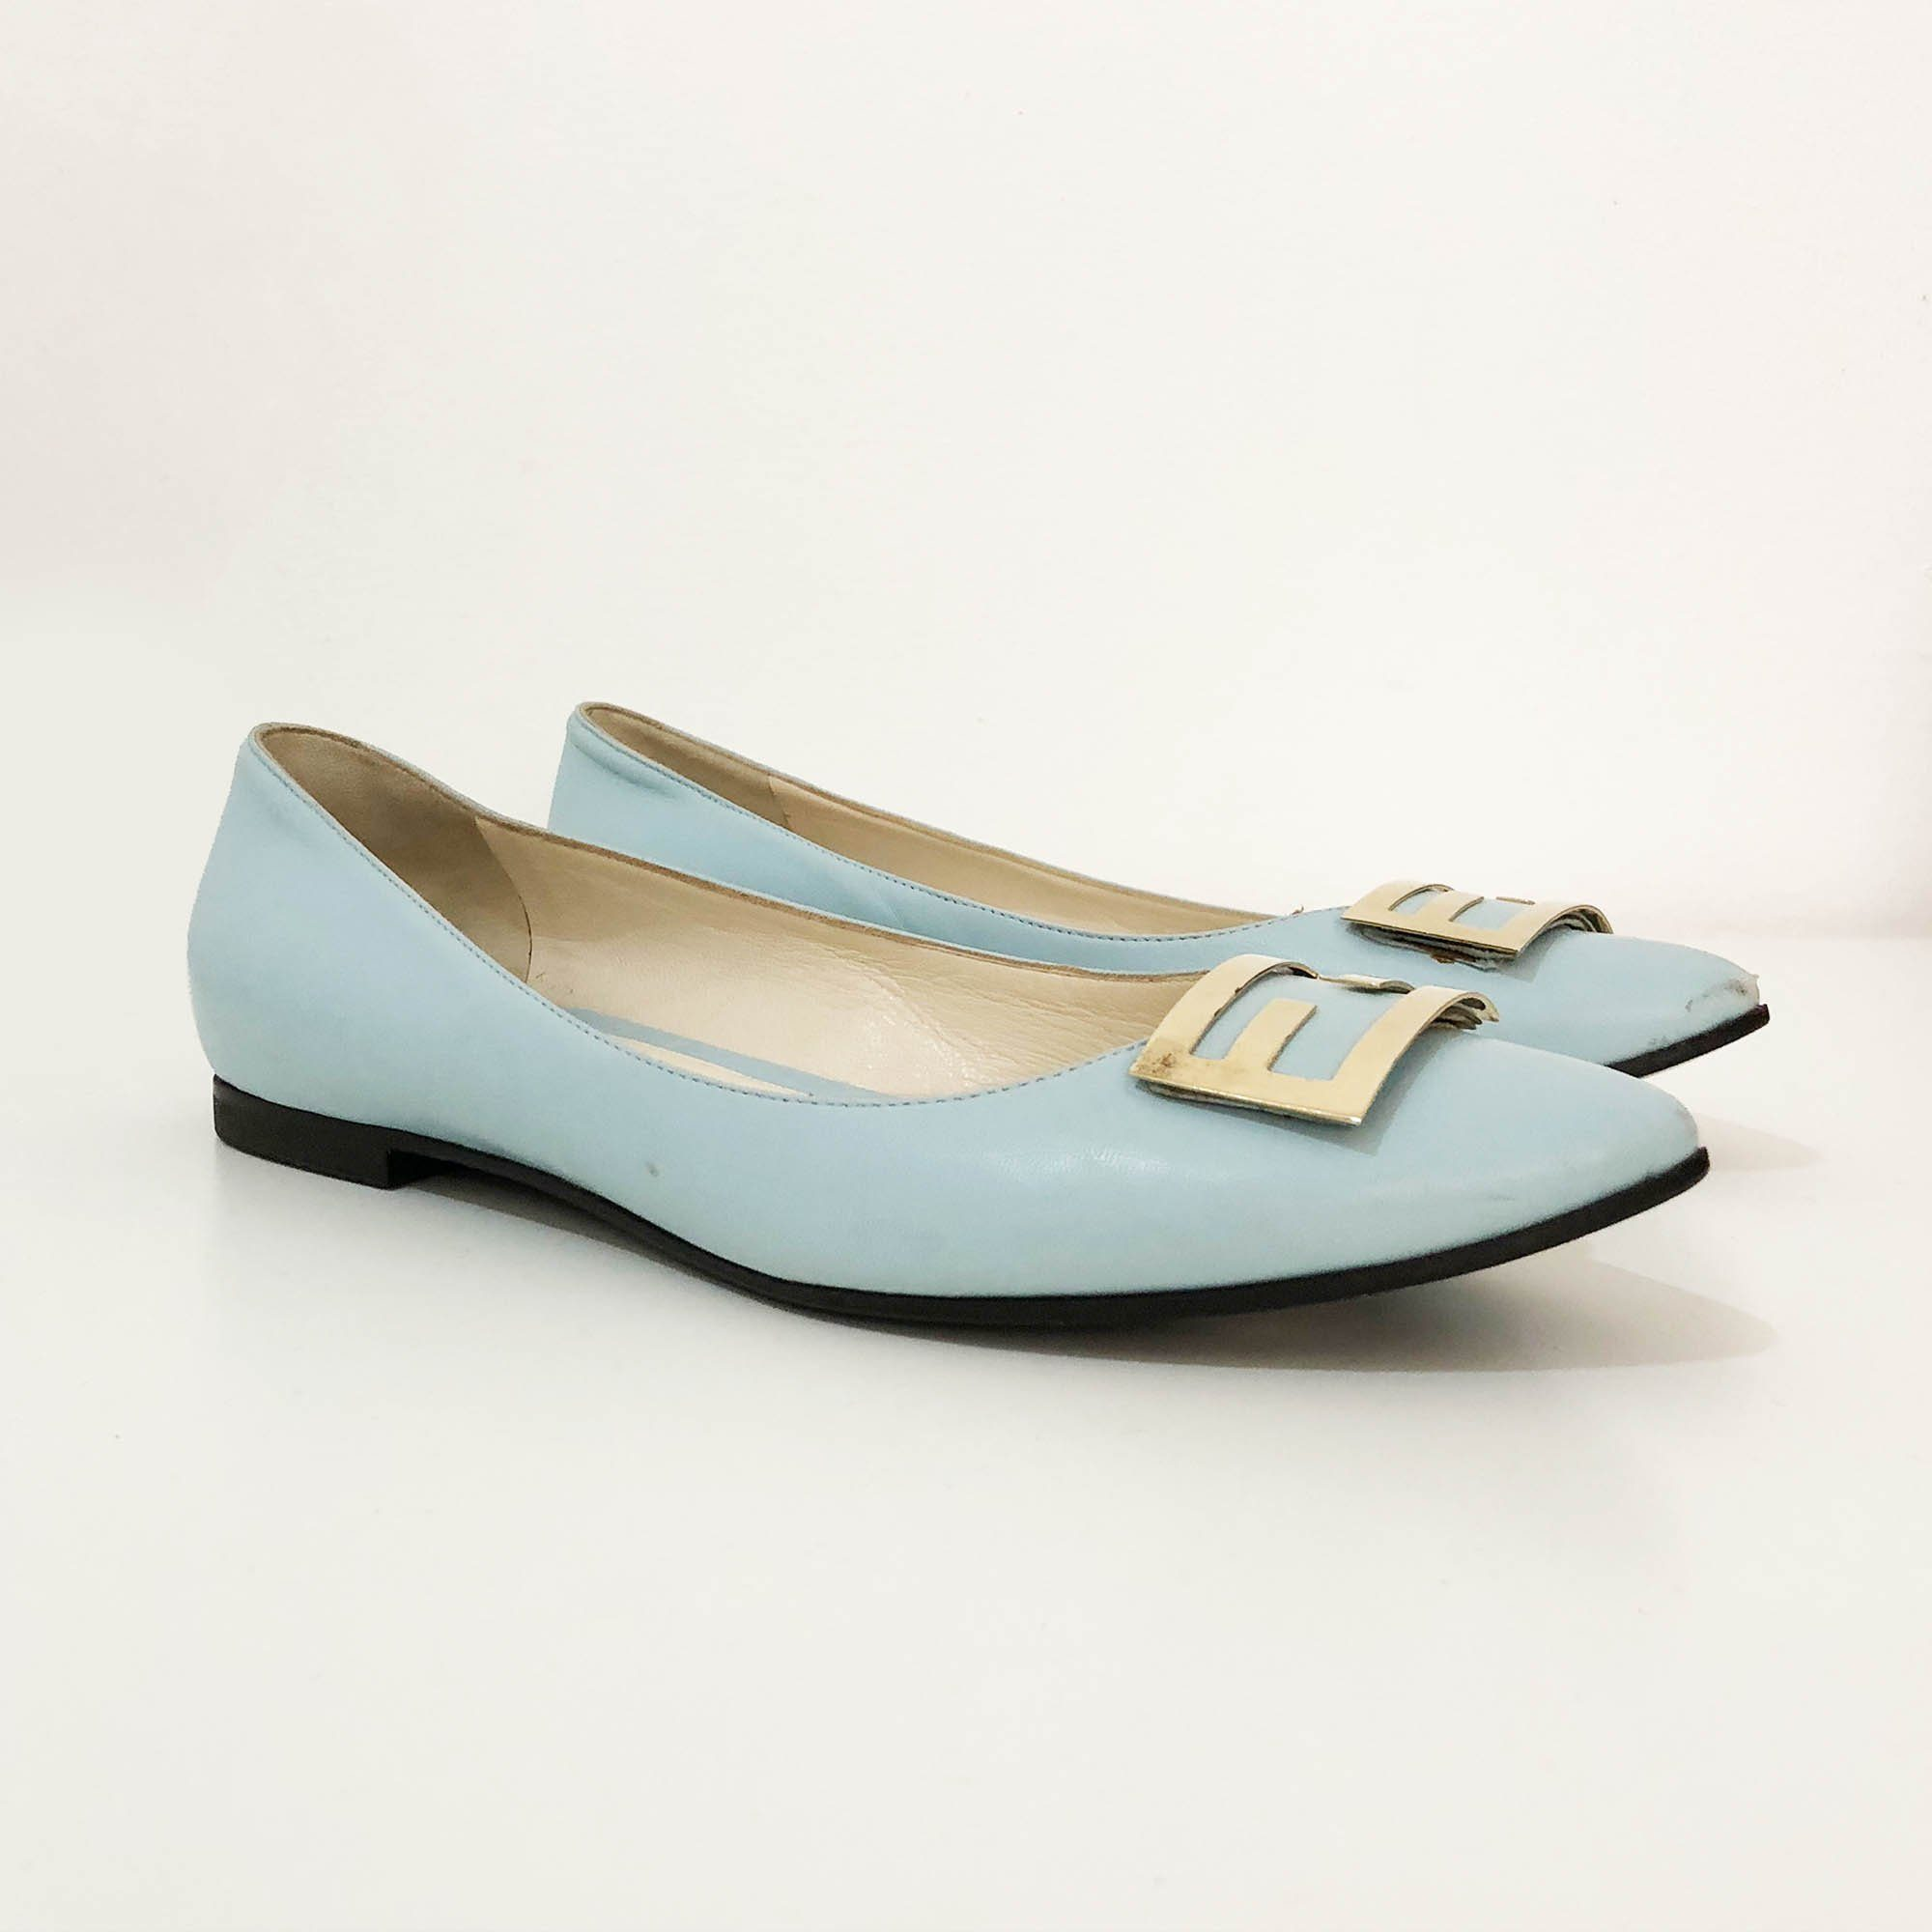 Fendi Light Blue Pointed Toe Flats